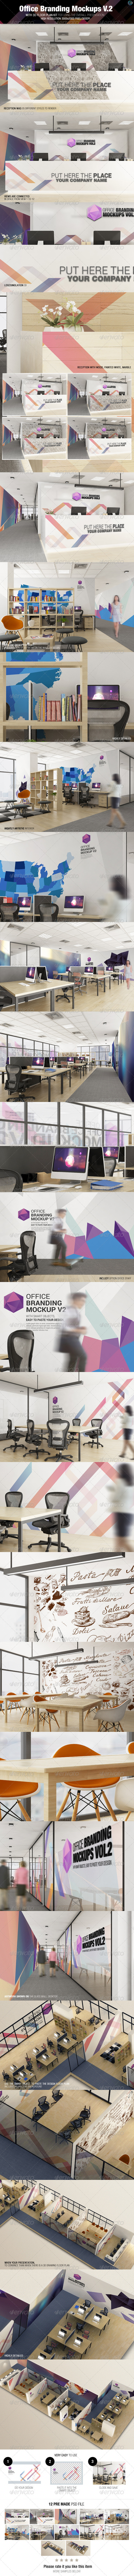 GraphicRiver Office Branding Mockup V2 8180632